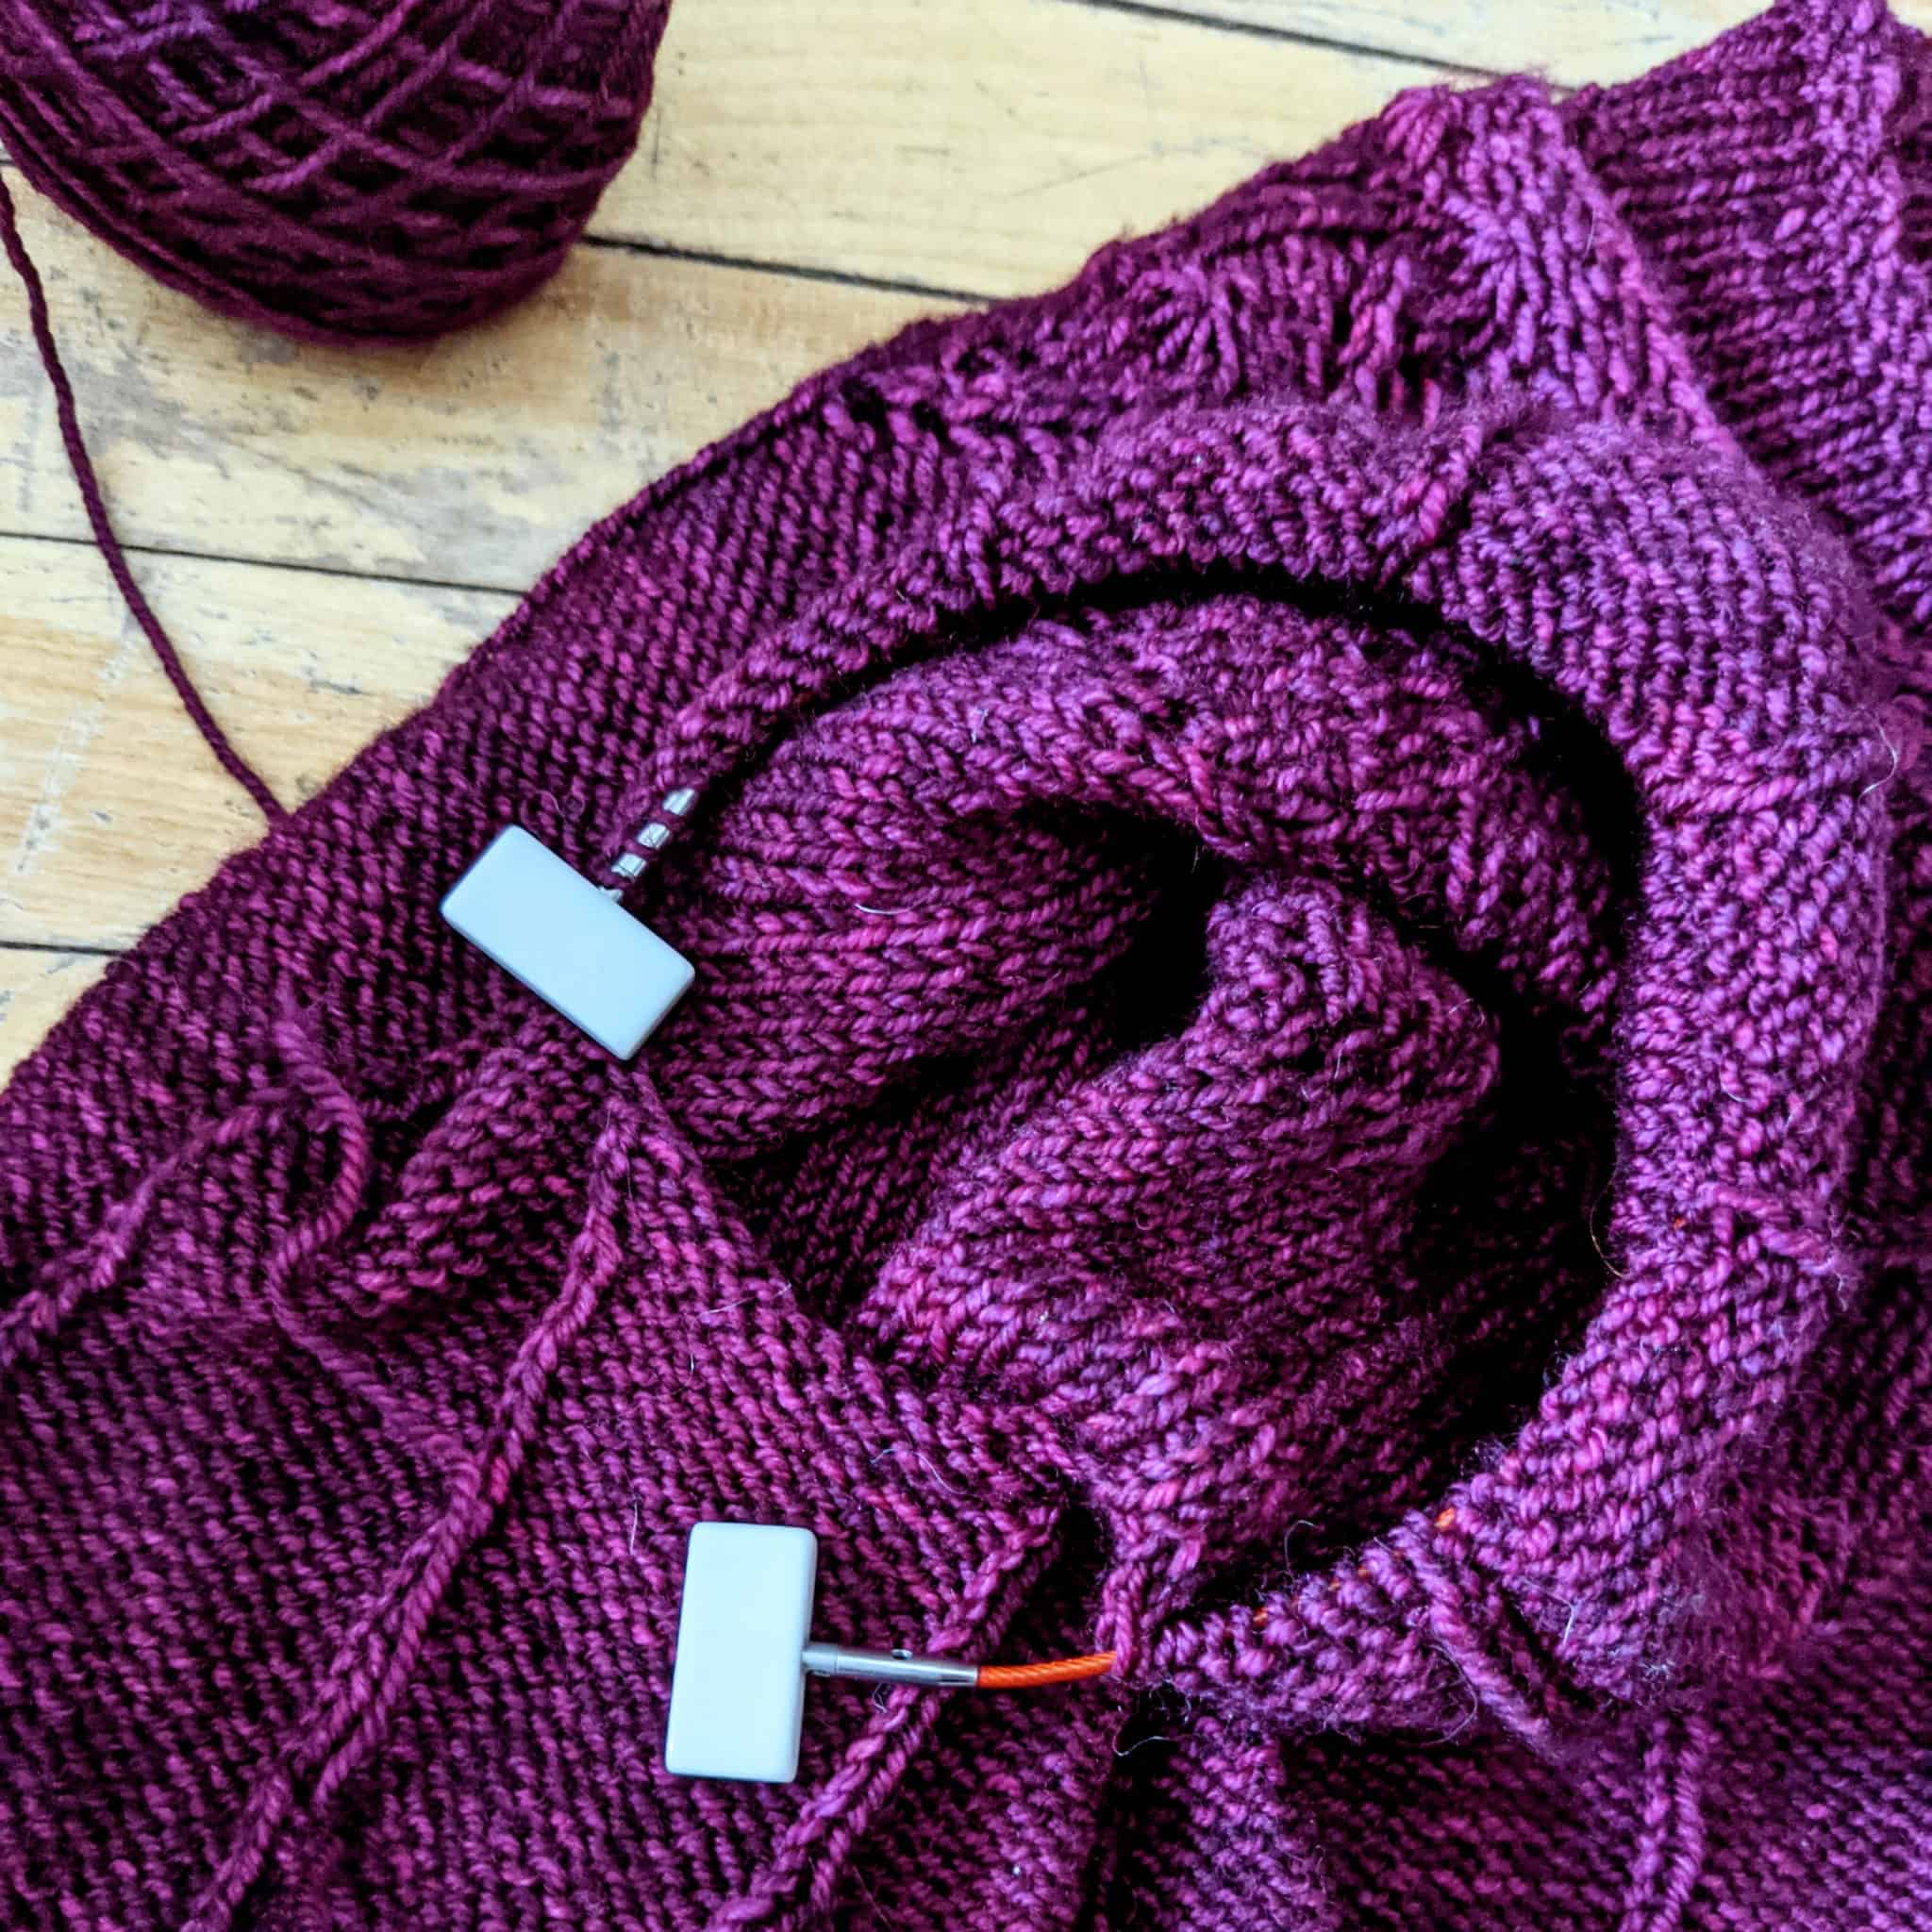 A purple knitting project on a red cord with white stoppers at the ends.